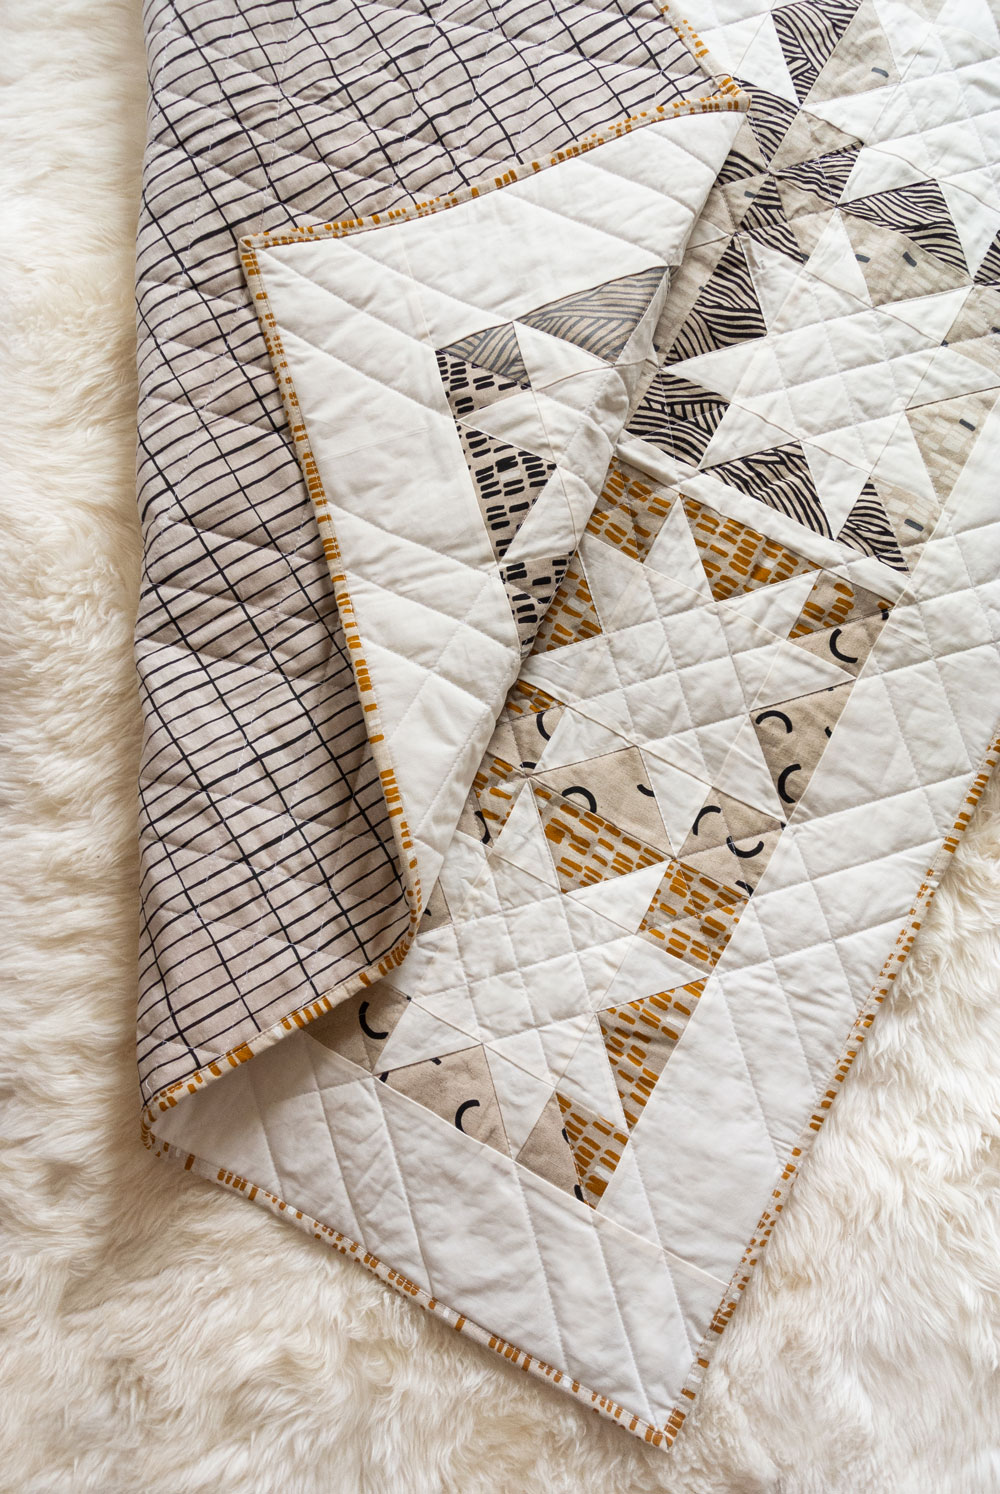 Make a sophisticated, neutral quilt using the Stars Hollow quilt pattern. This is a classic quilt pattern, but with a modern twist. The design plays on negative space to create traditional sawtooth star quilt blocks. suzyquilts.com #linen #quiltpattern